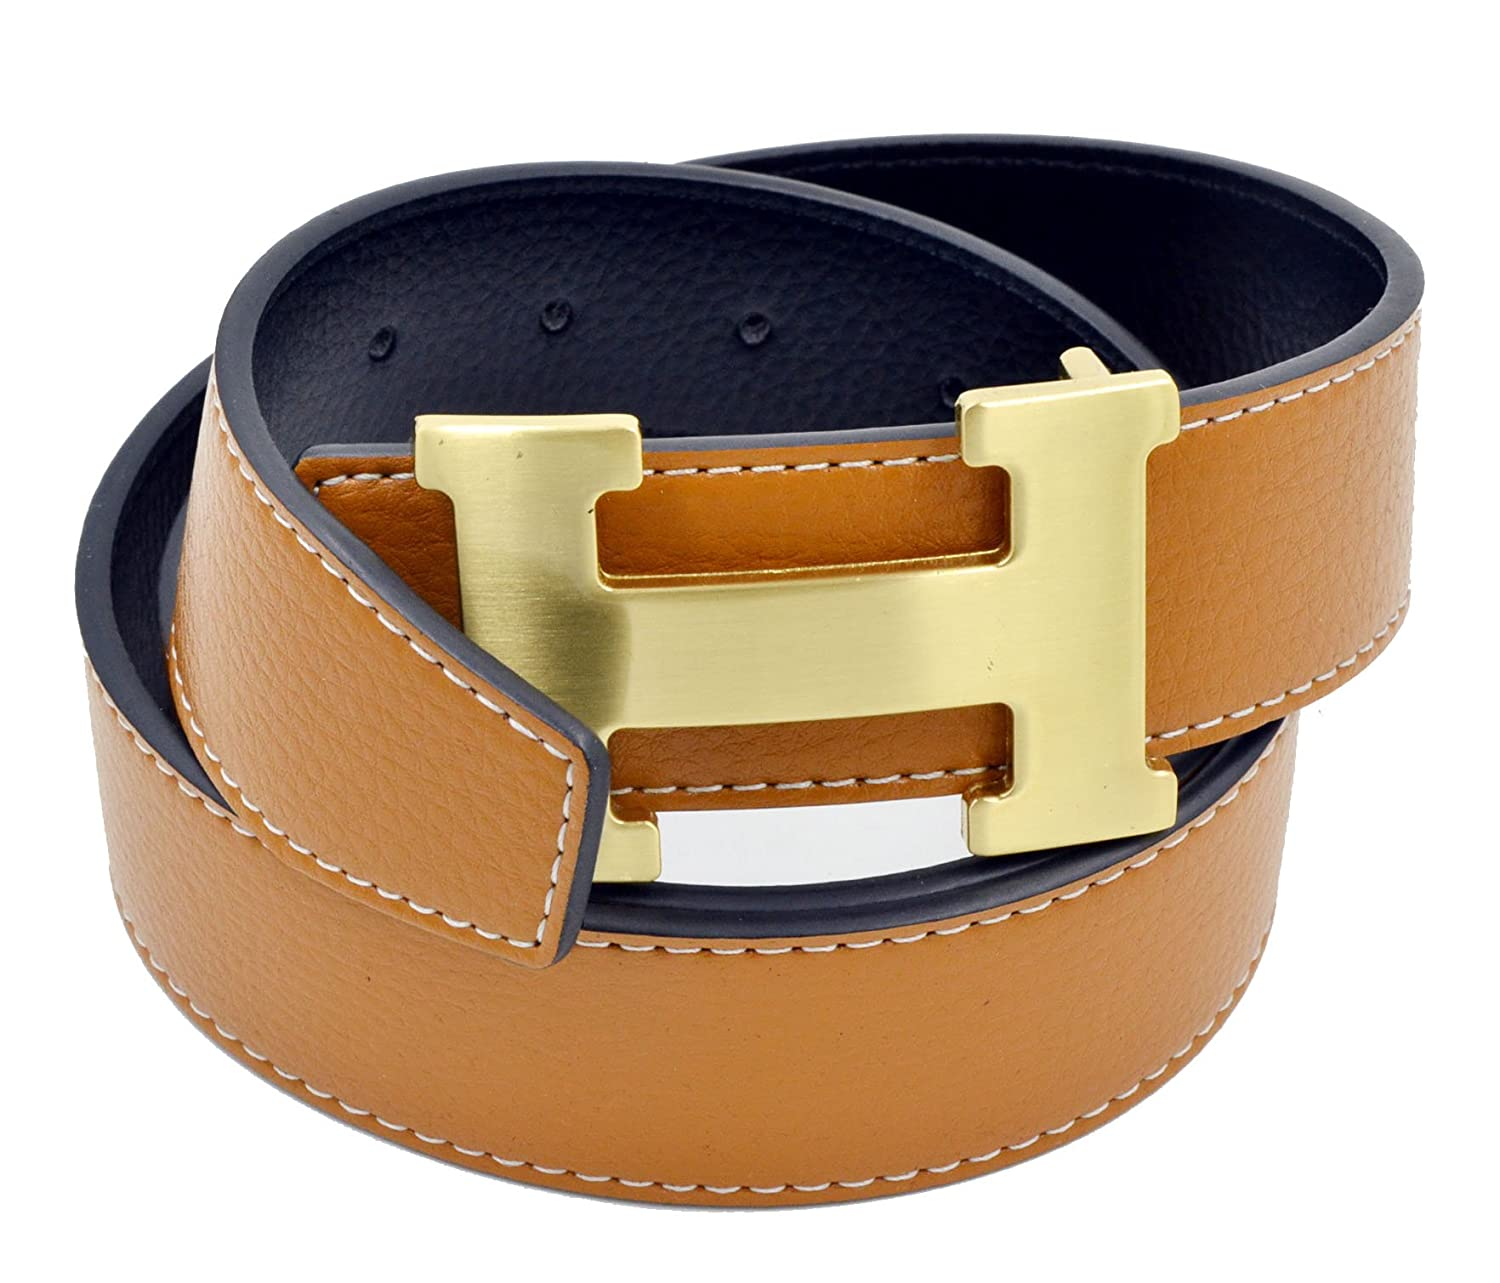 HG ACCESSORY メンズ 9882226124 S|Brown With Gold Buckle Brown With Gold Buckle S